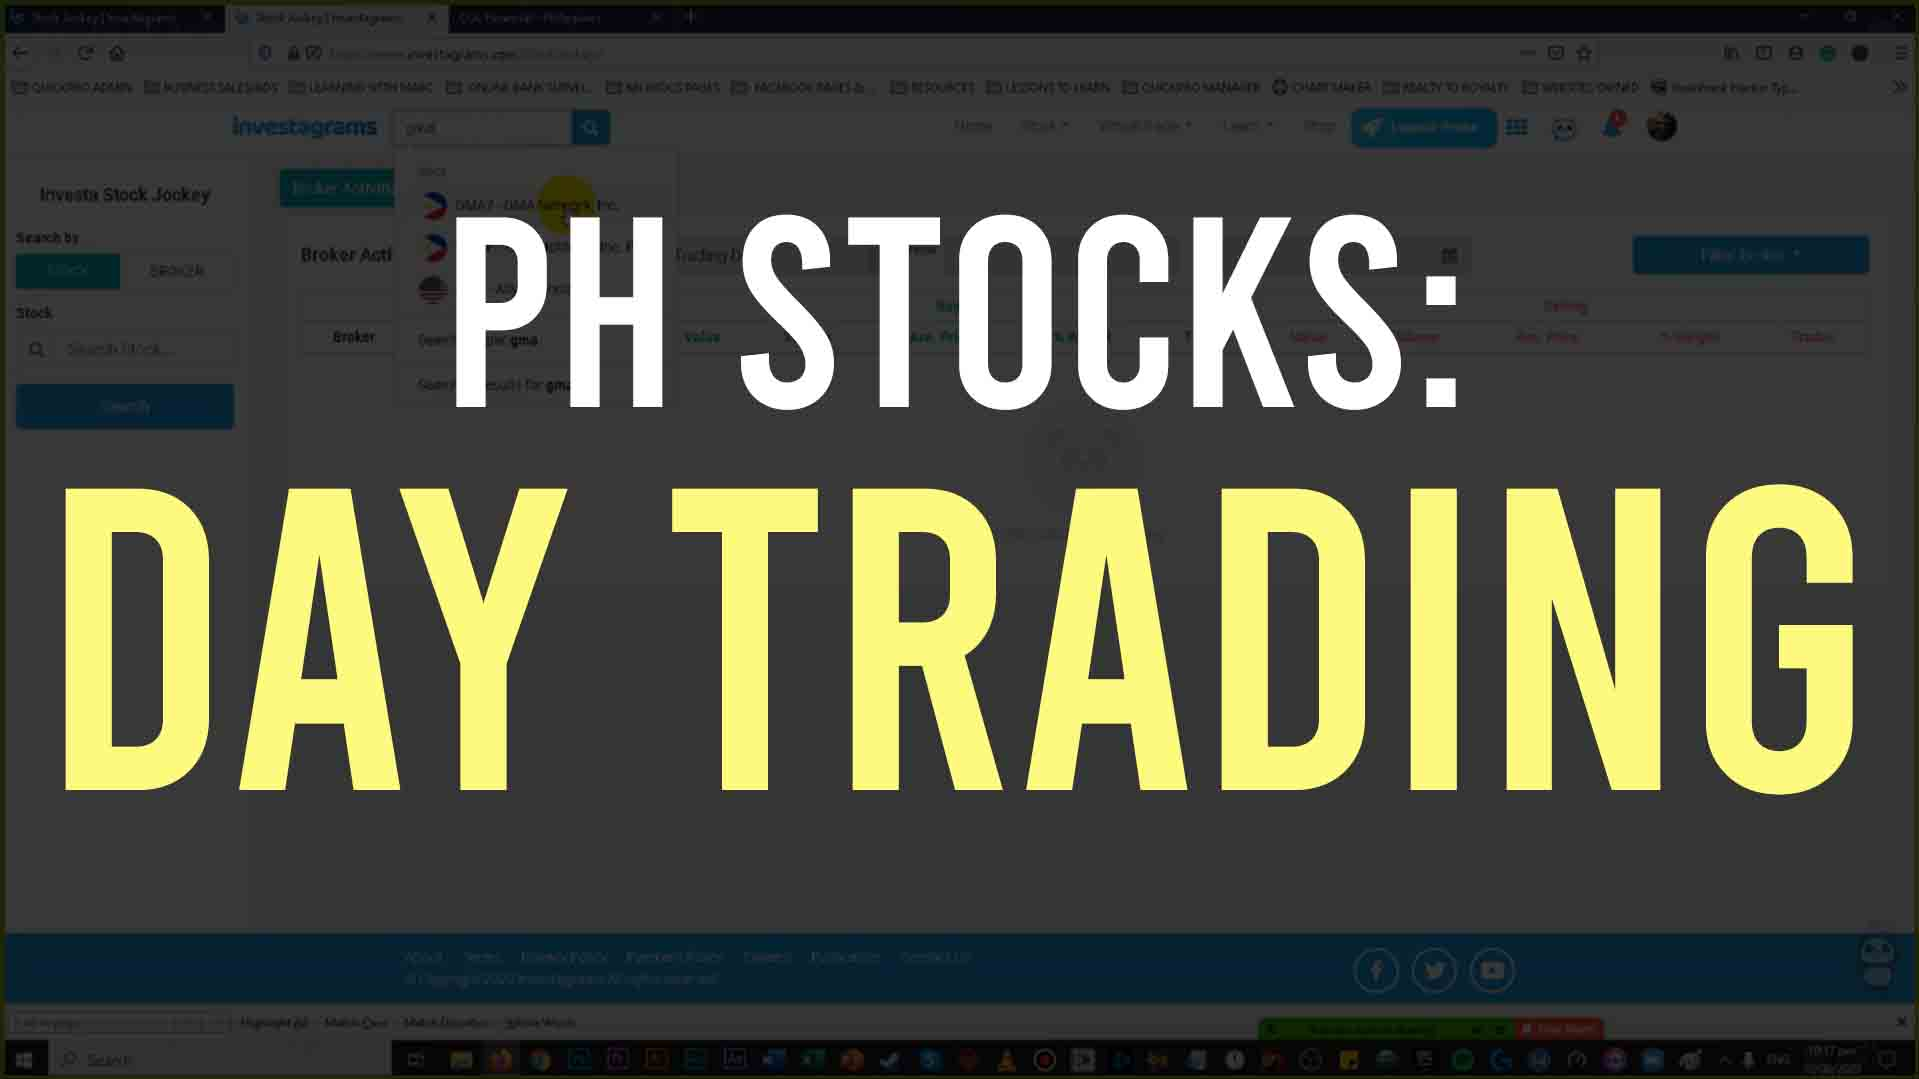 PH STOCKS DAY TRADING